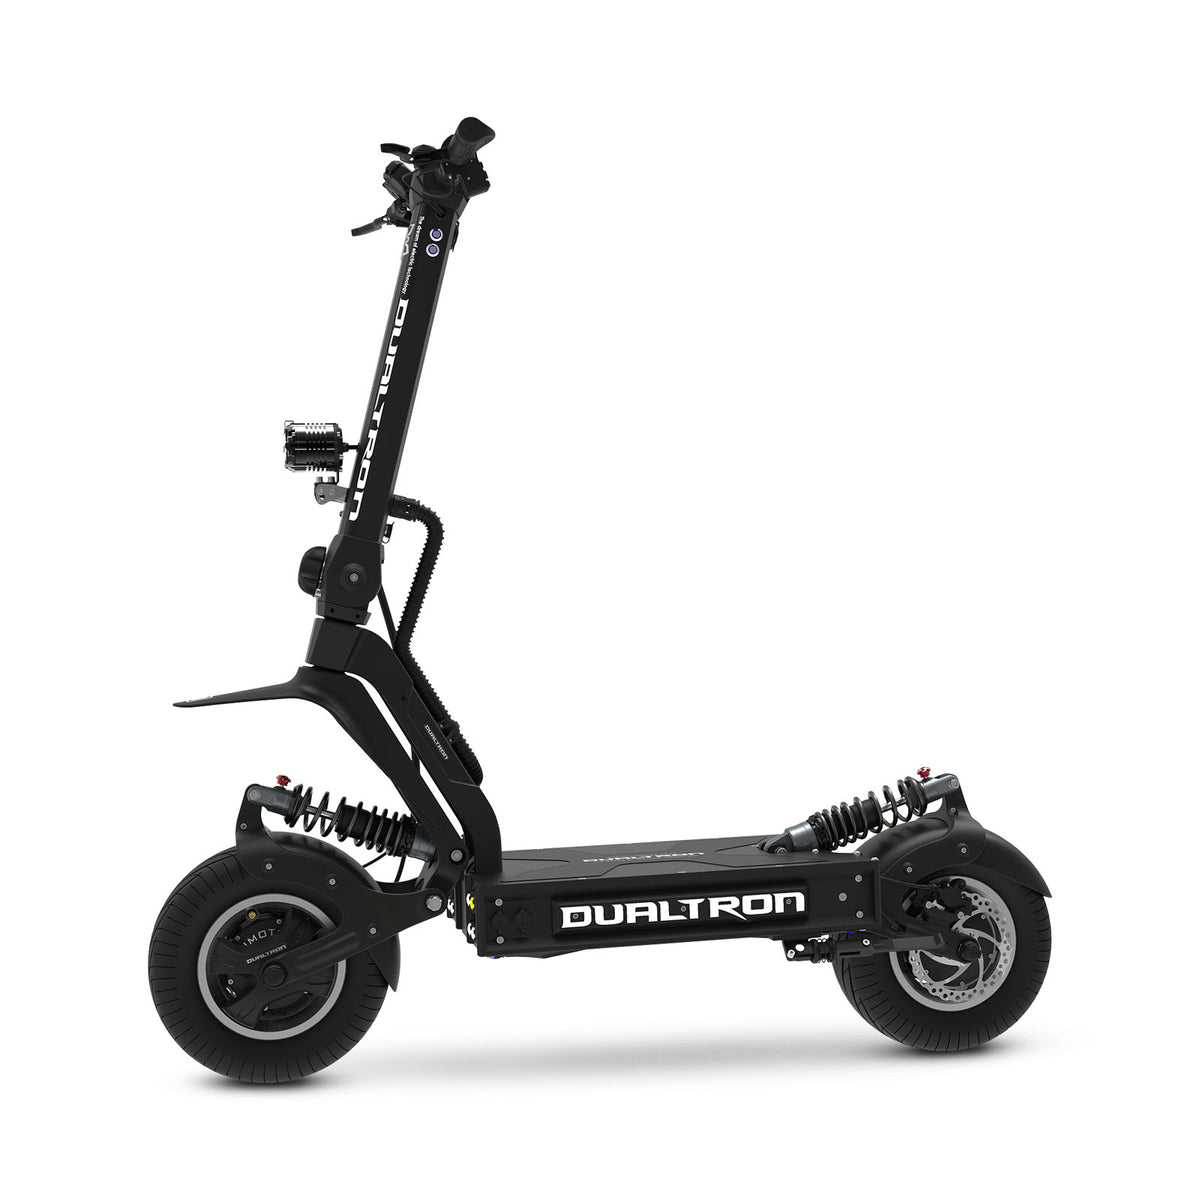 Dualtron X Electric Scooter Left Side No Seat